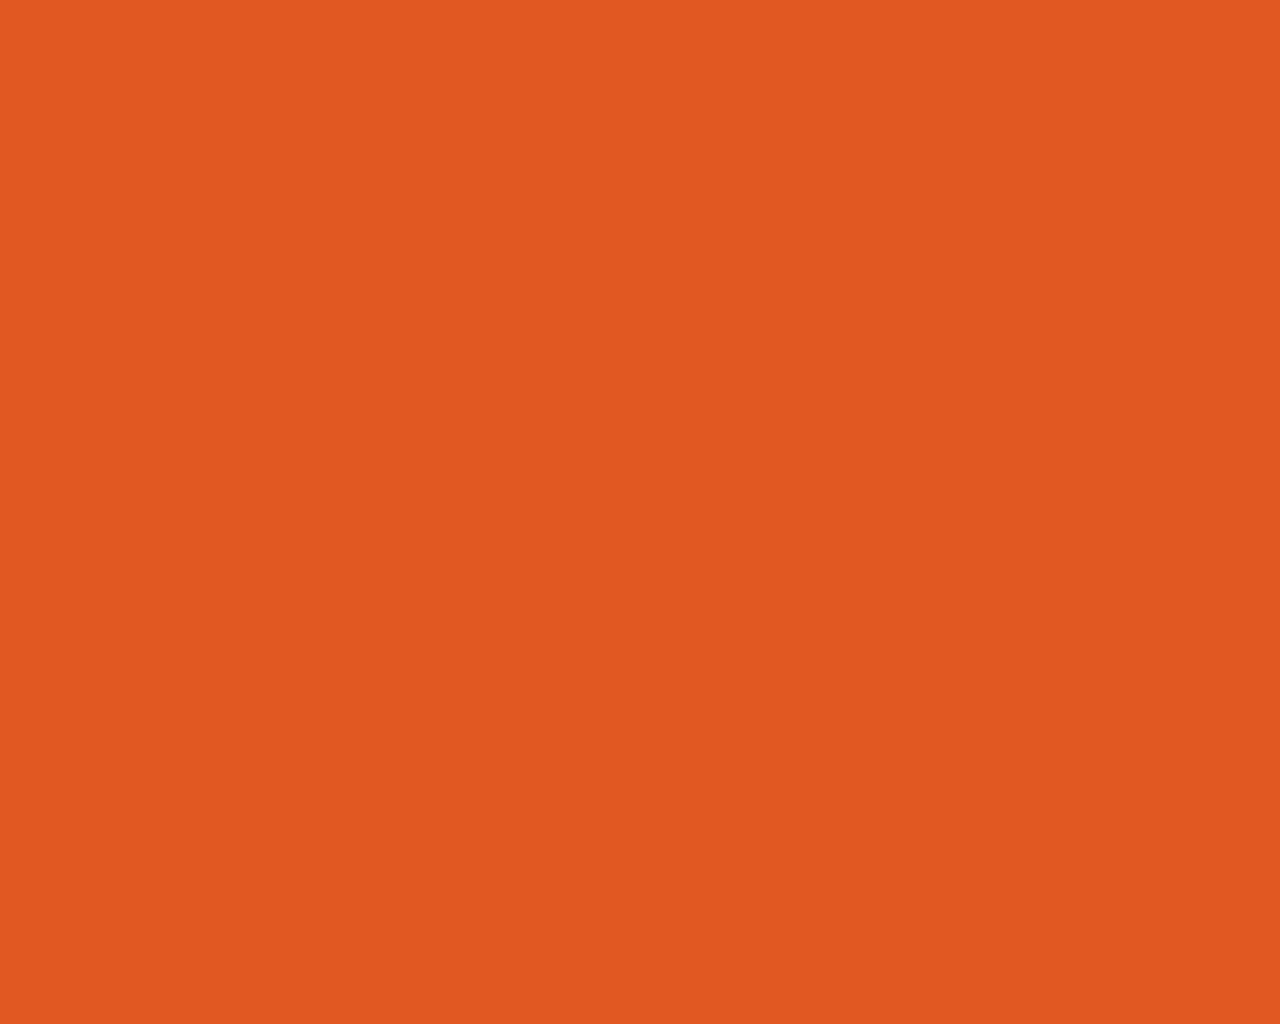 1280x1024 Flame Solid Color Background